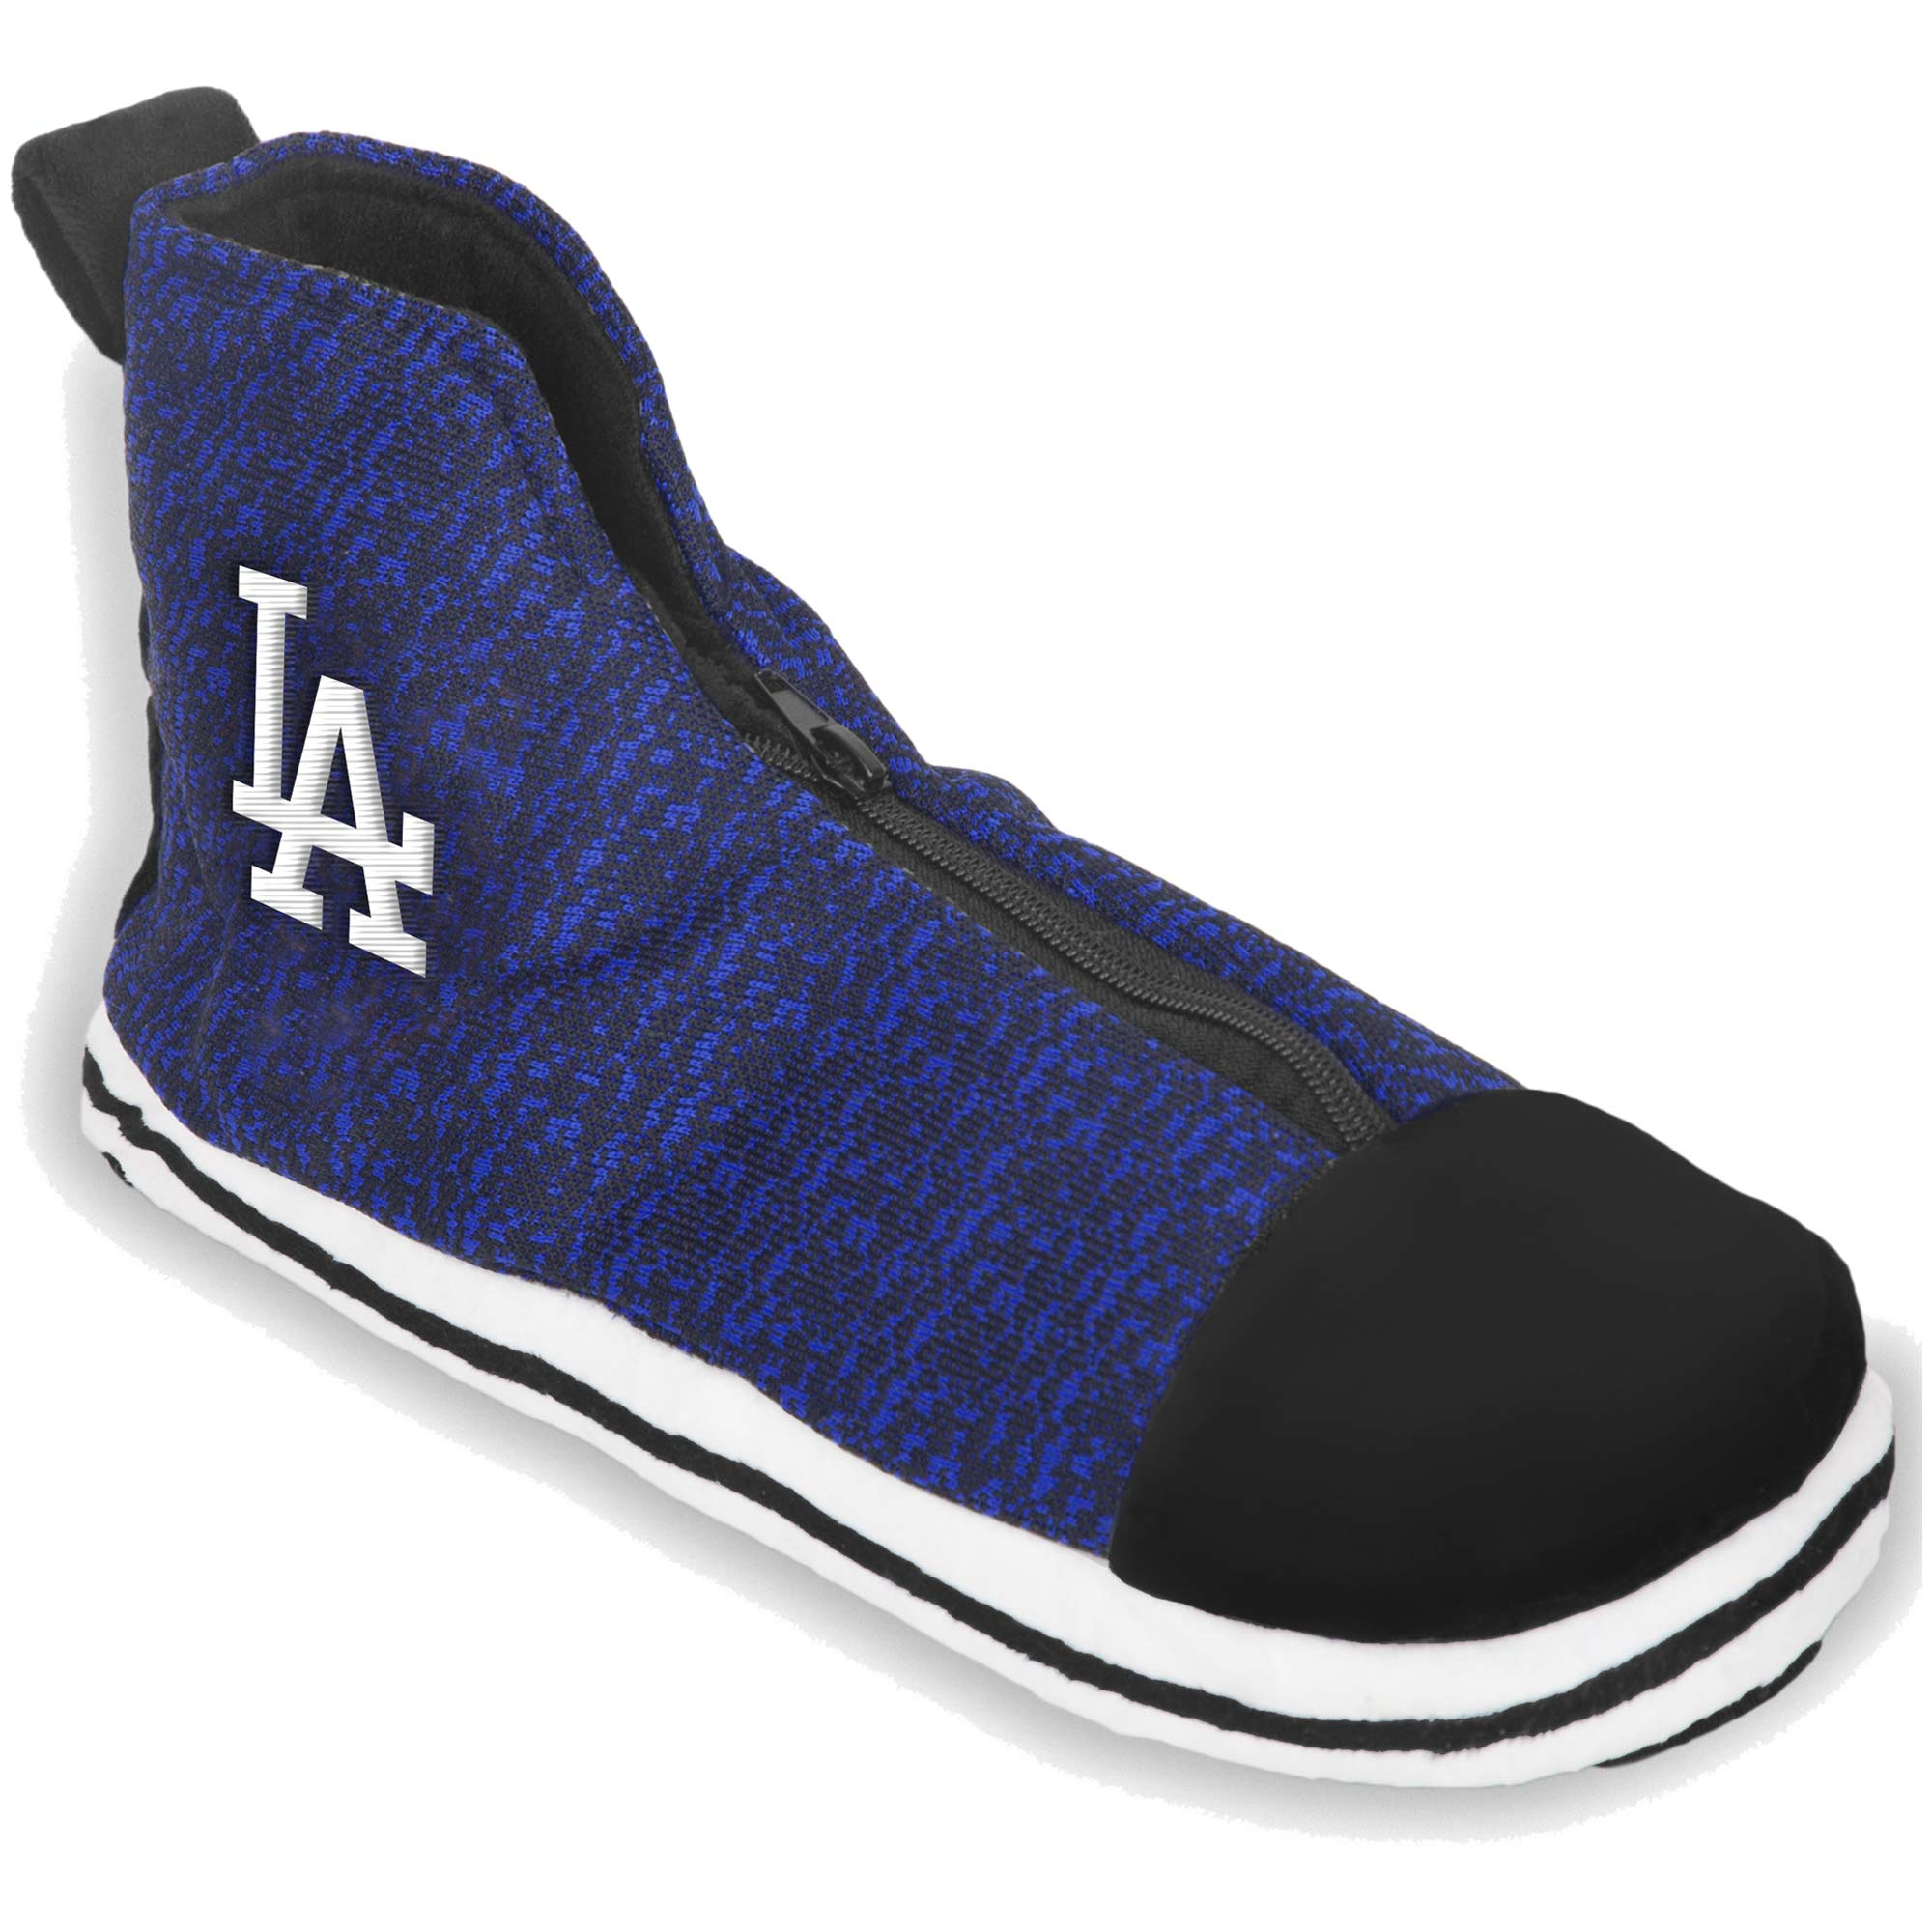 Los Angeles Dodgers Knit High Top Sneaker Slippers